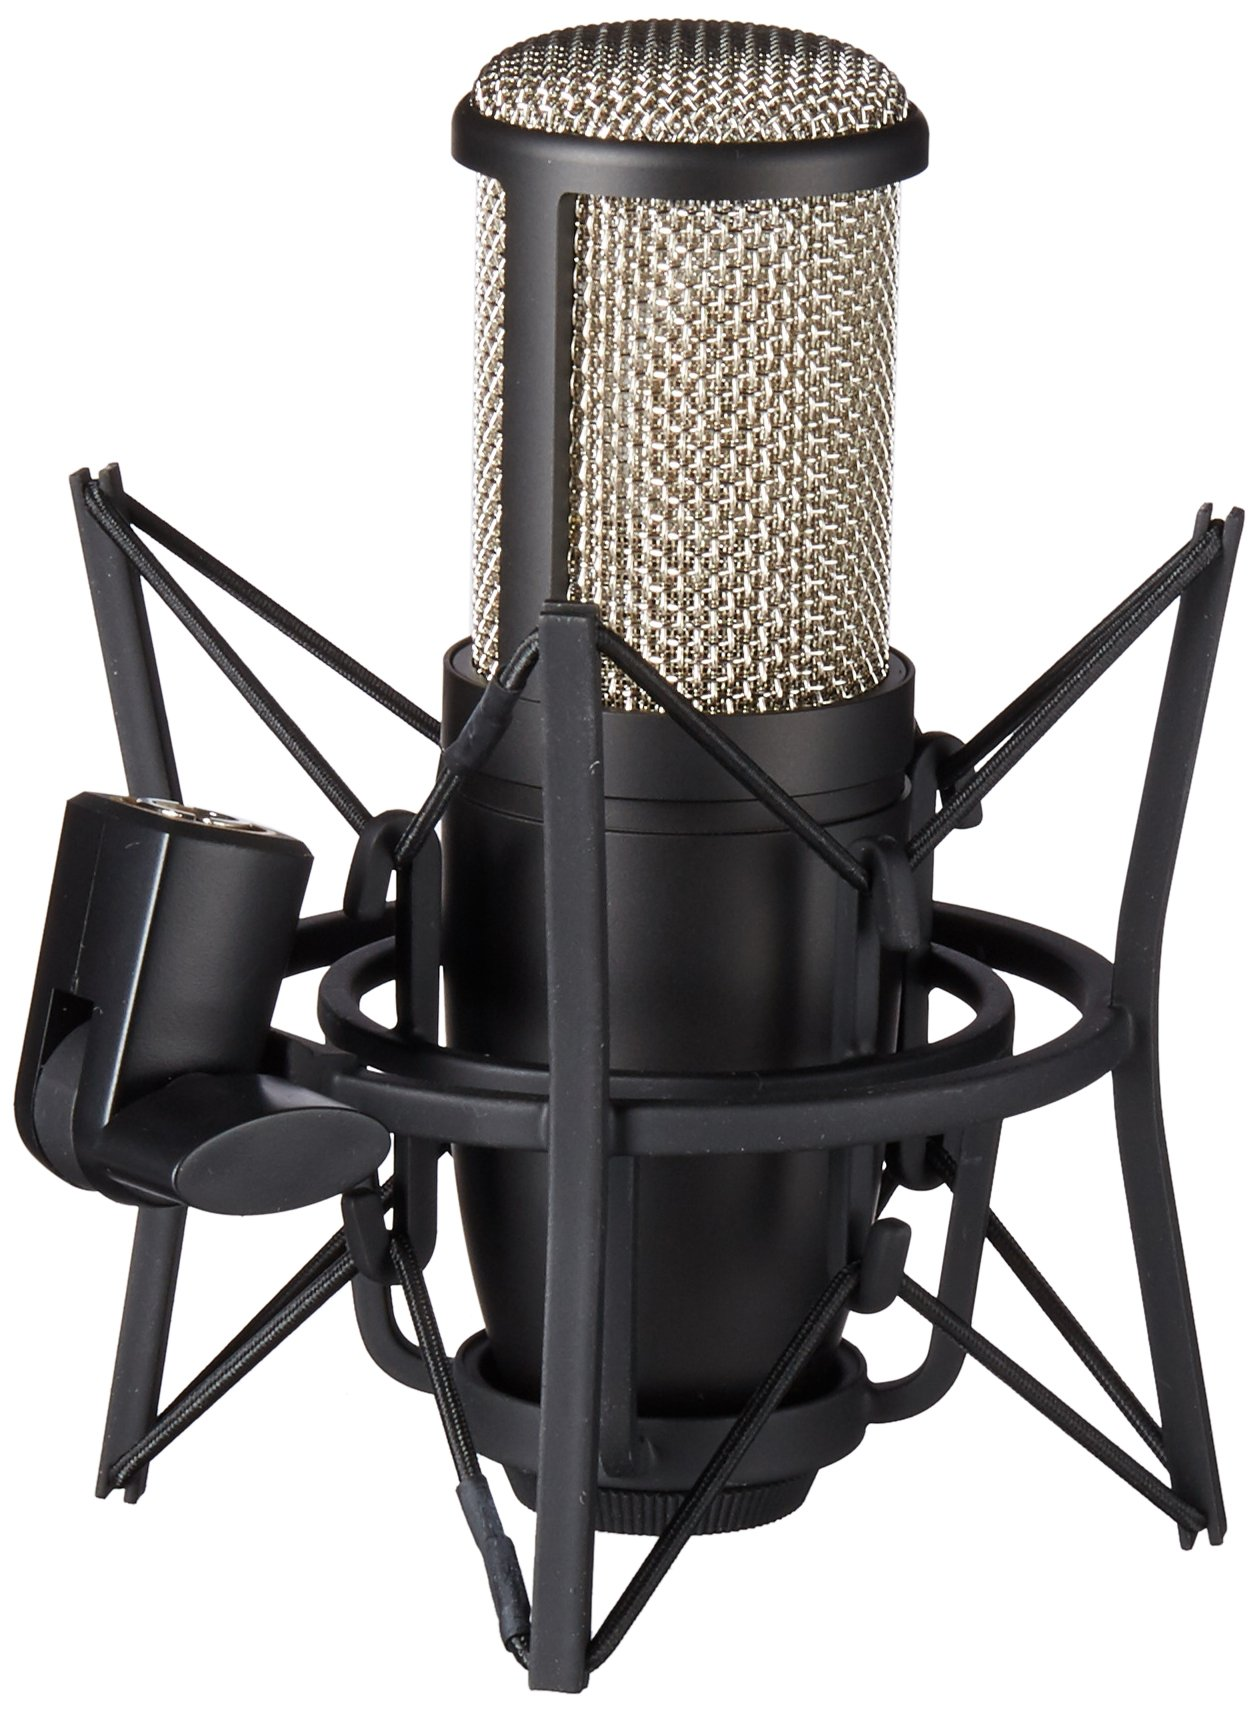 AKG Pro Audio Pro Audio Perception 220 Professional Studio Microphone